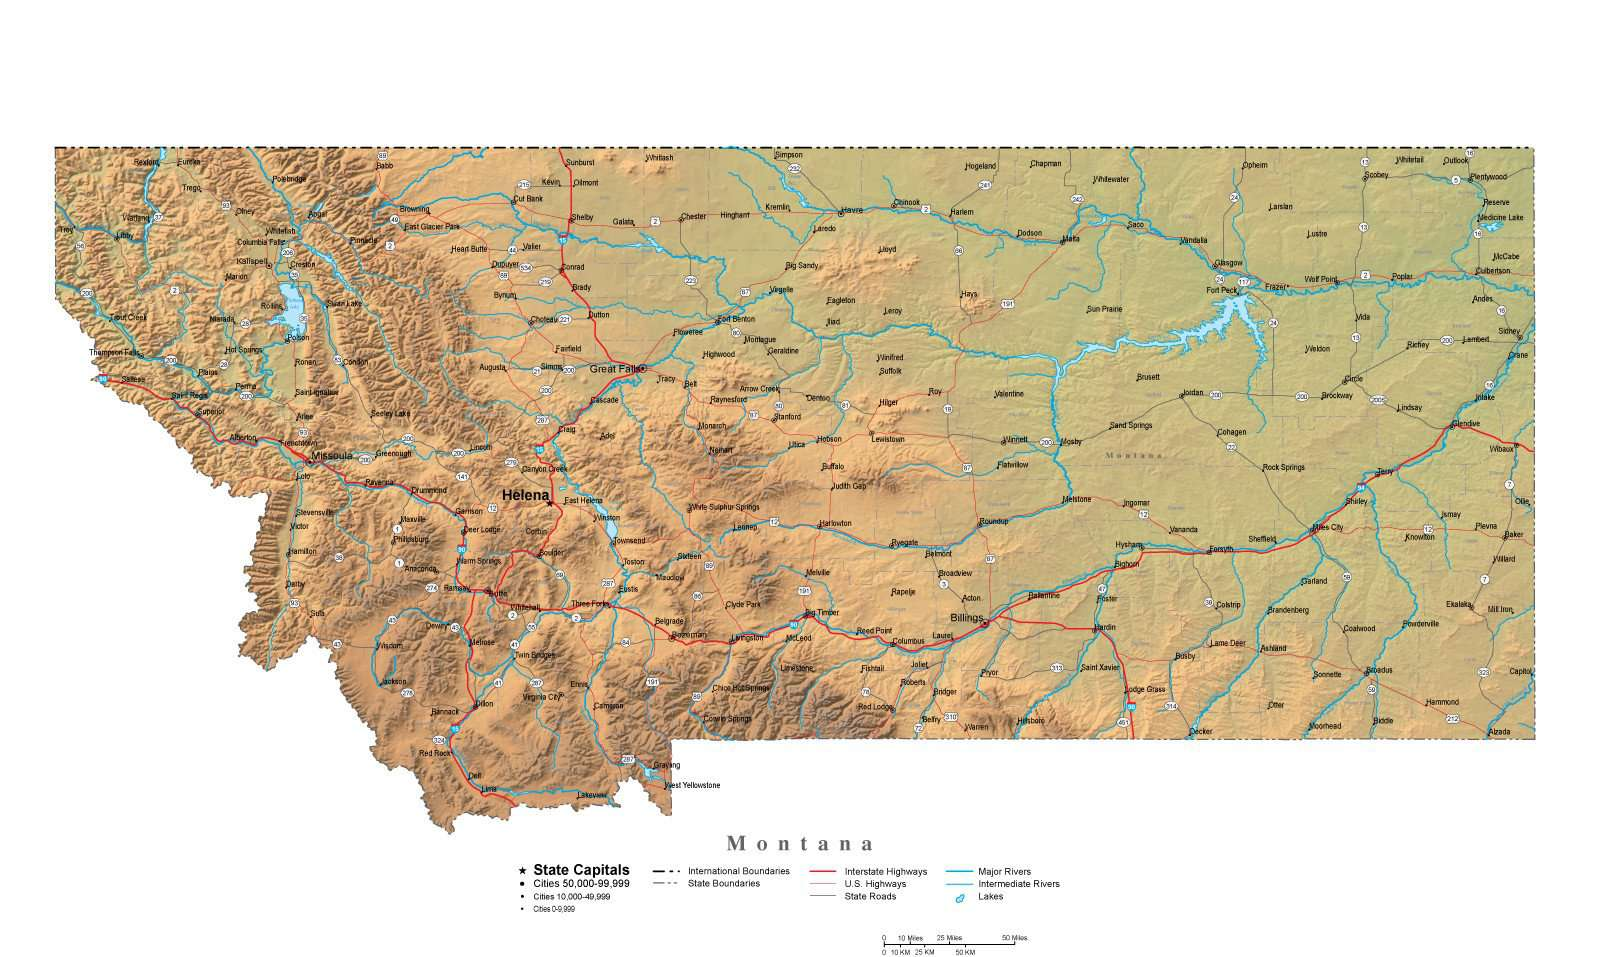 Montana Map - Cut-Out Style with Cities, Roads, Water Features and Terrain  Background